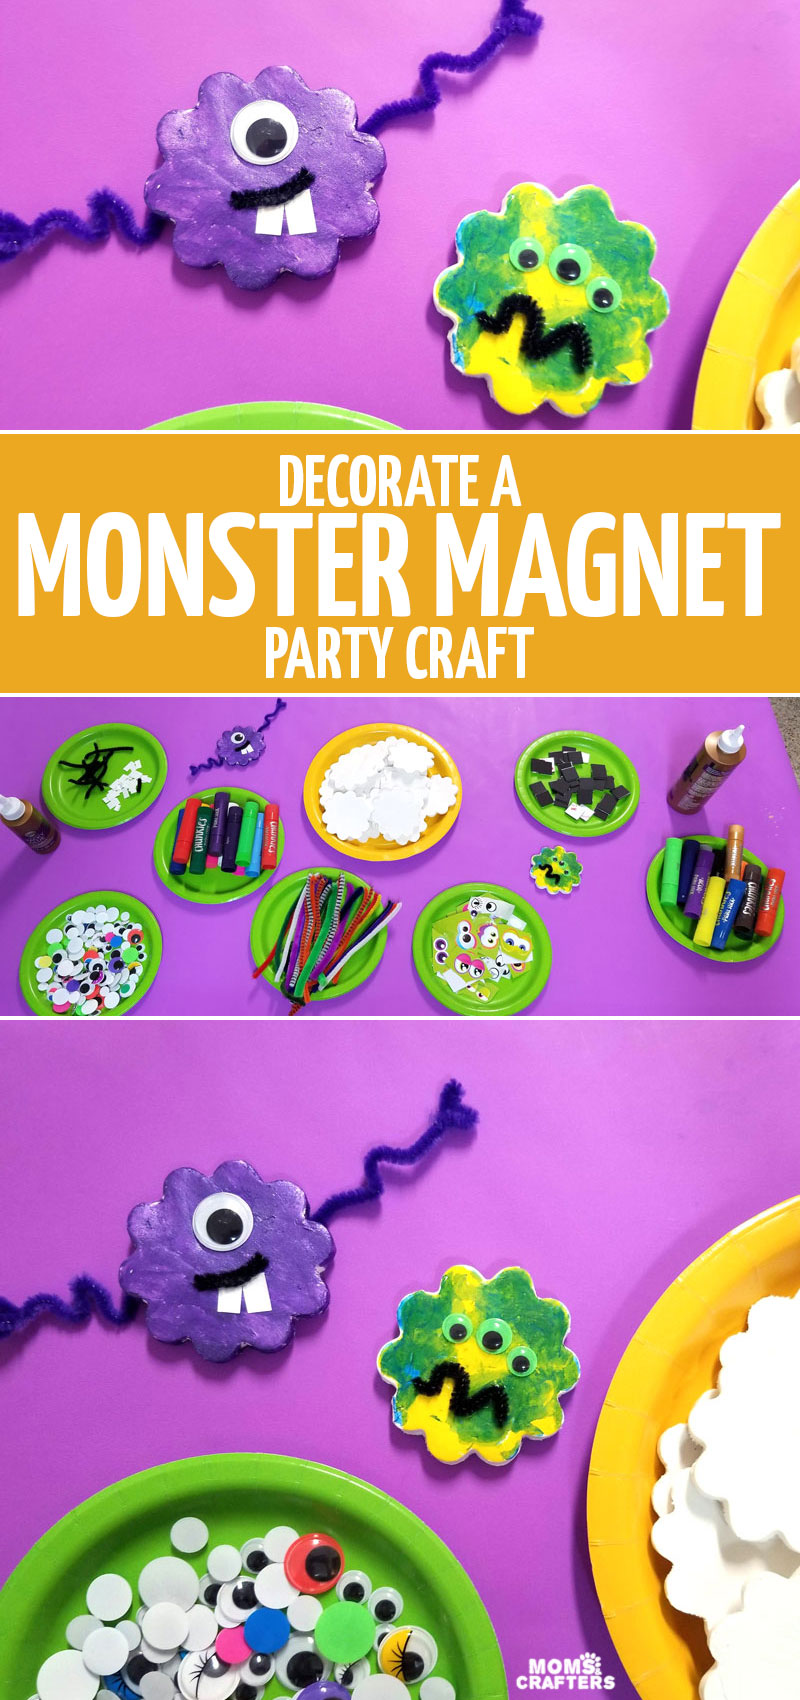 click to learn how we made this monster craft - DIY magnets - at our monster themed third birthday party! This fun monster party activity is a great take-home souvenir, Halloween craft, or make it for fun. It's good for toddlers, preschoolers, and kids of all ages!